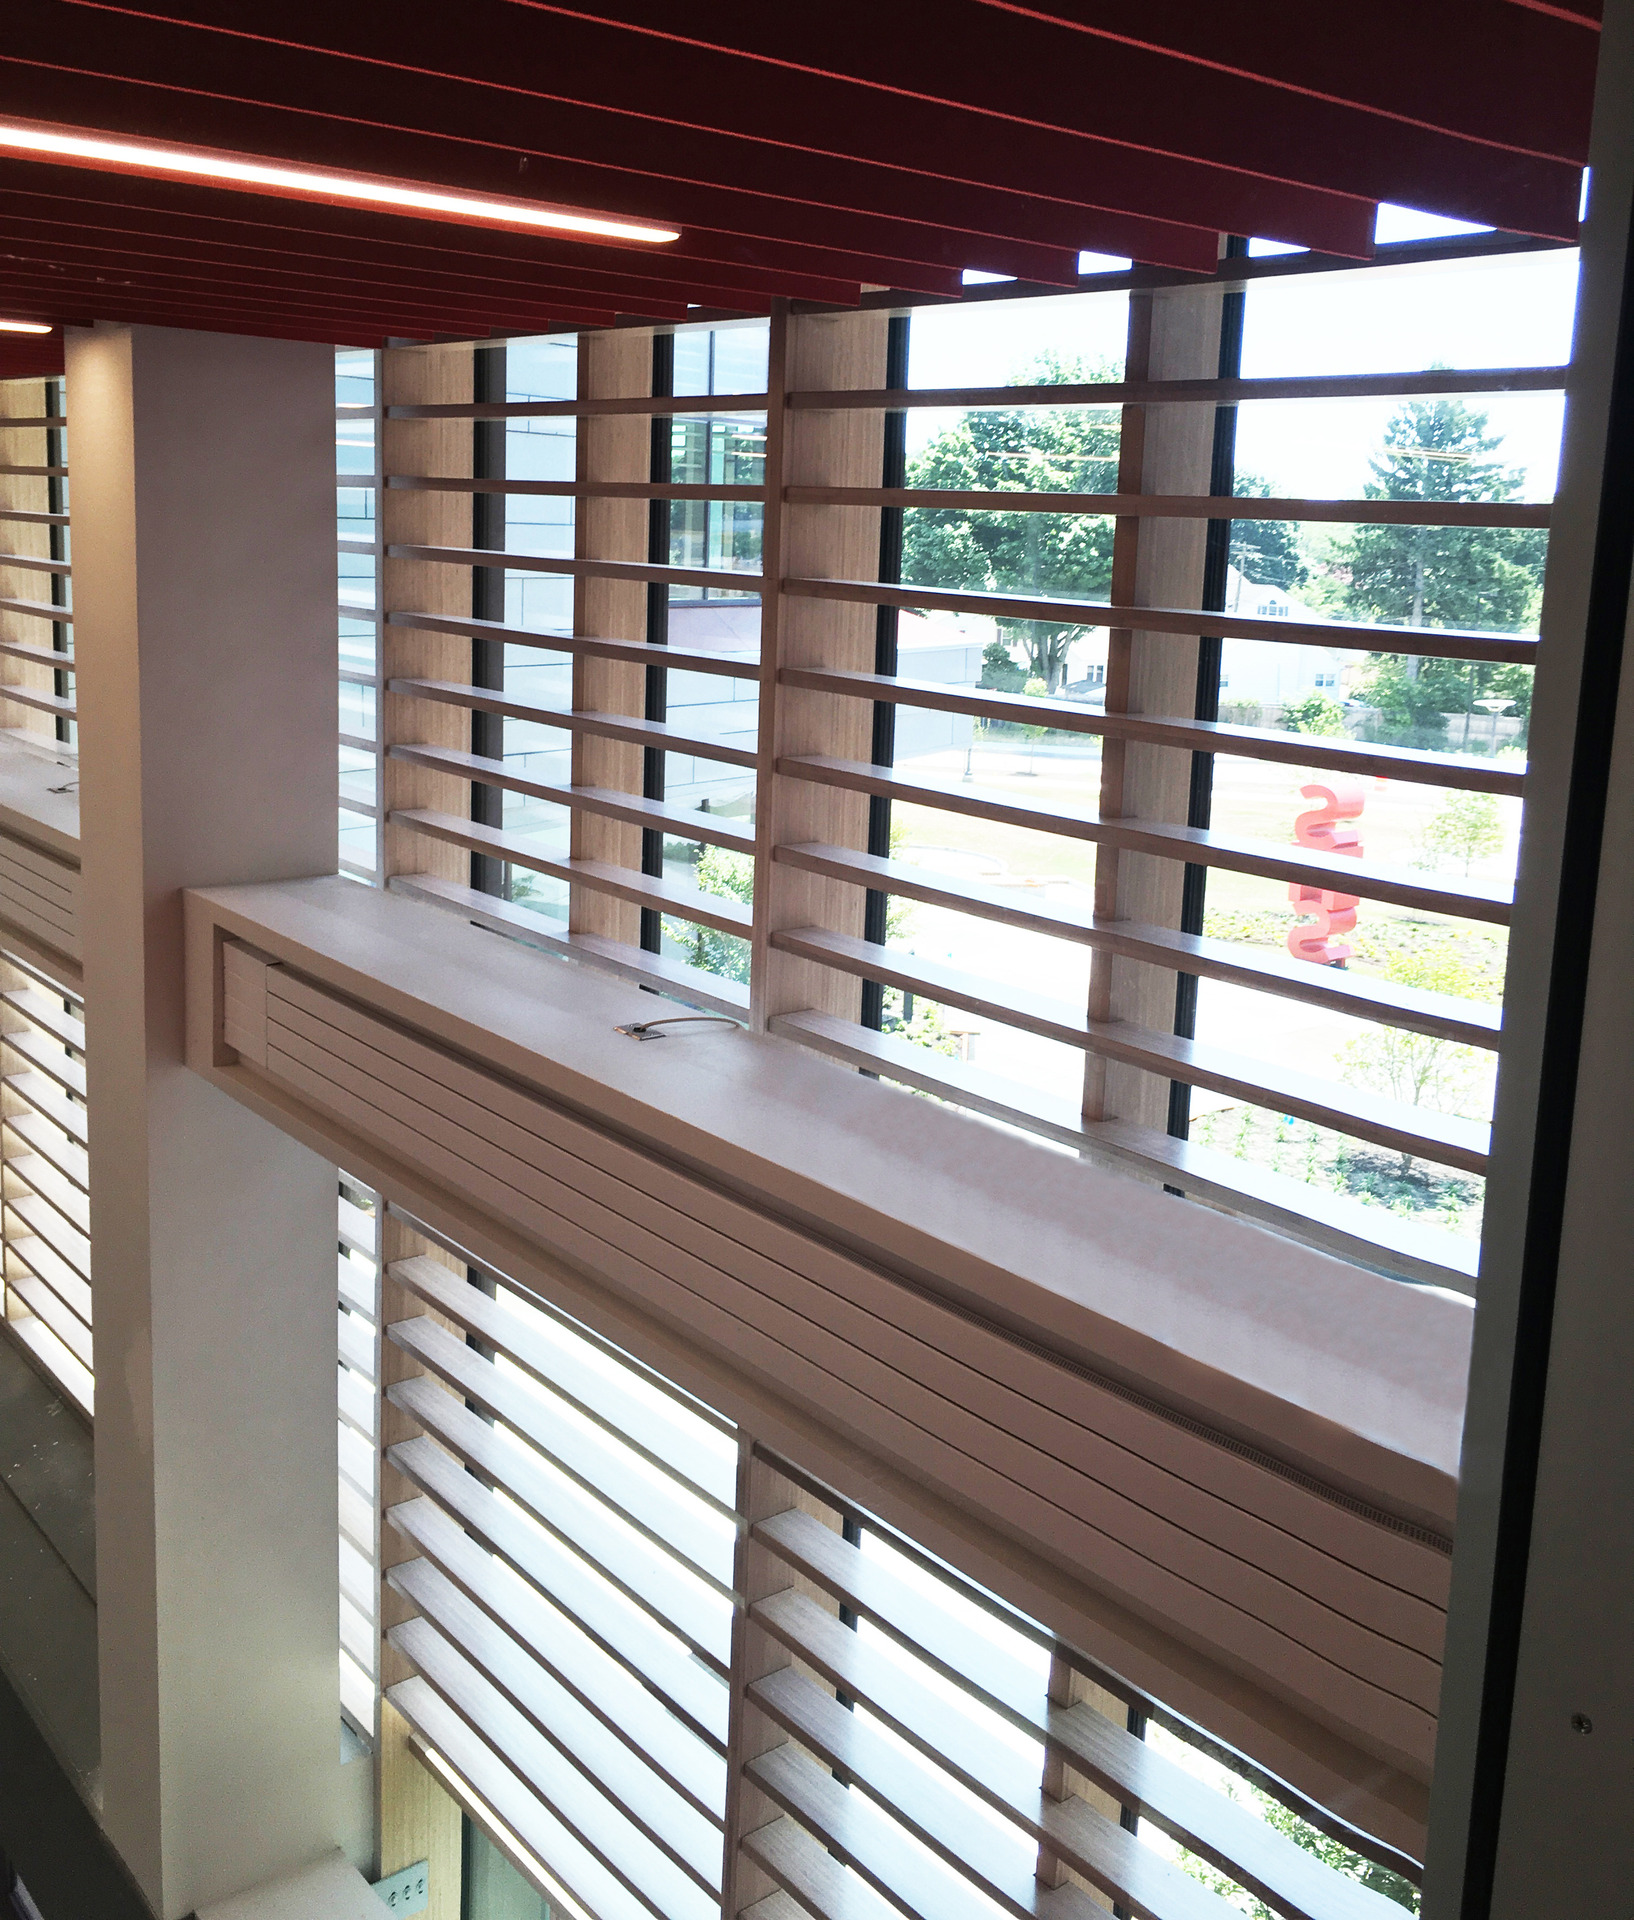 Featured here at Saugus Middle/High School areLamboo® Vue™ Series - Curtain Wall System & Sun Shade Louvers, this brings uniformity throughout the school.